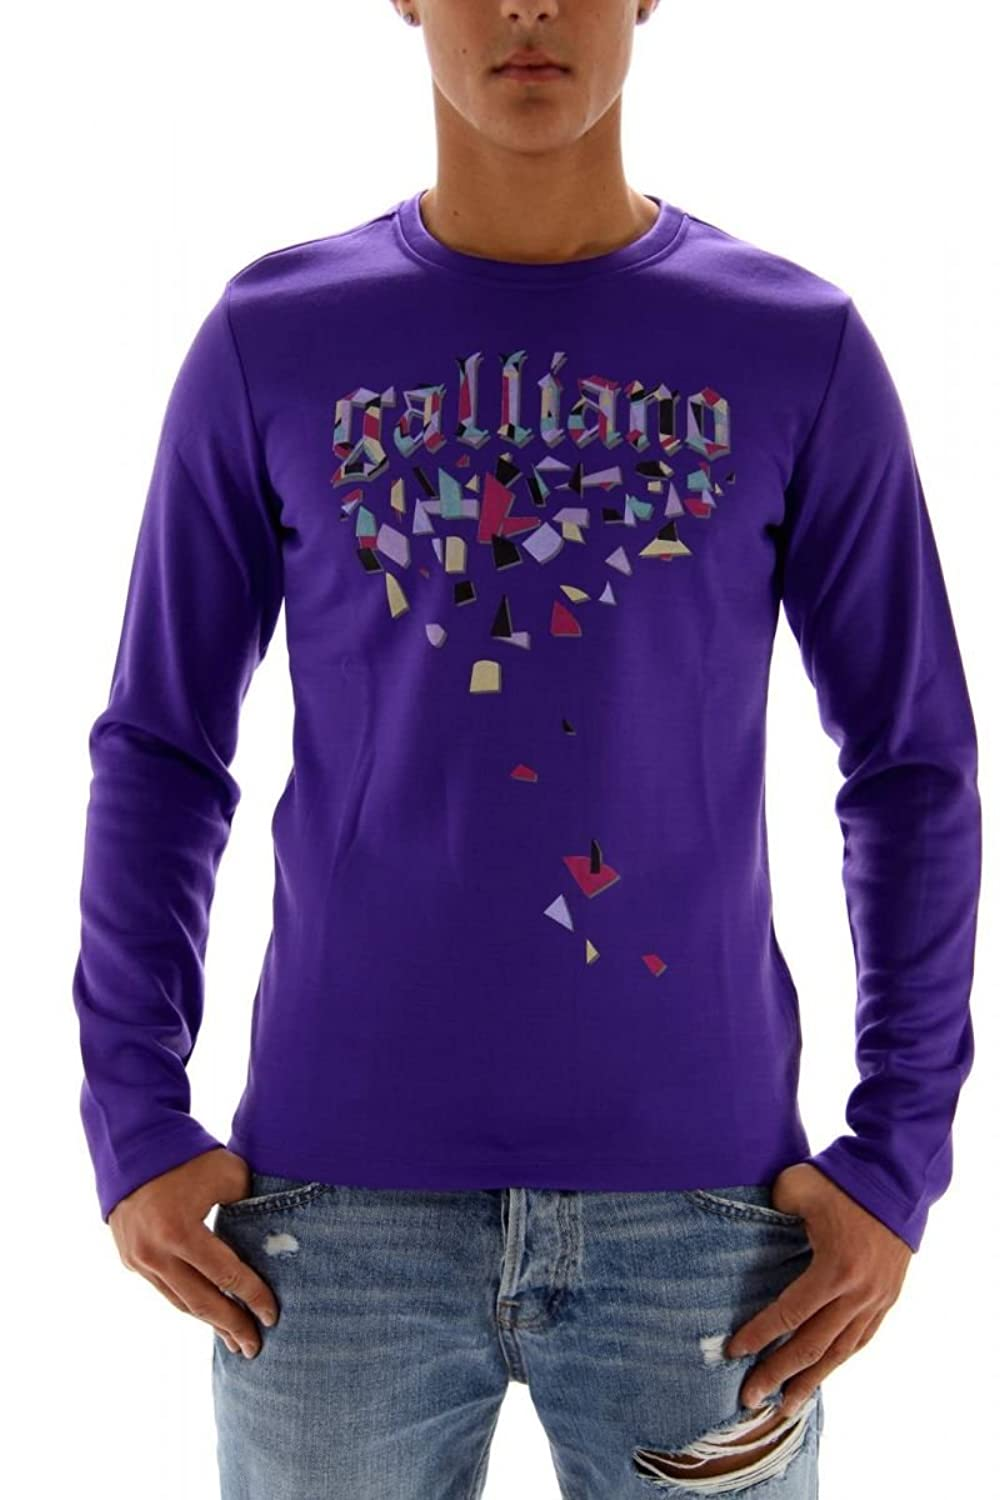 John Galliano Men's Sweatshirt